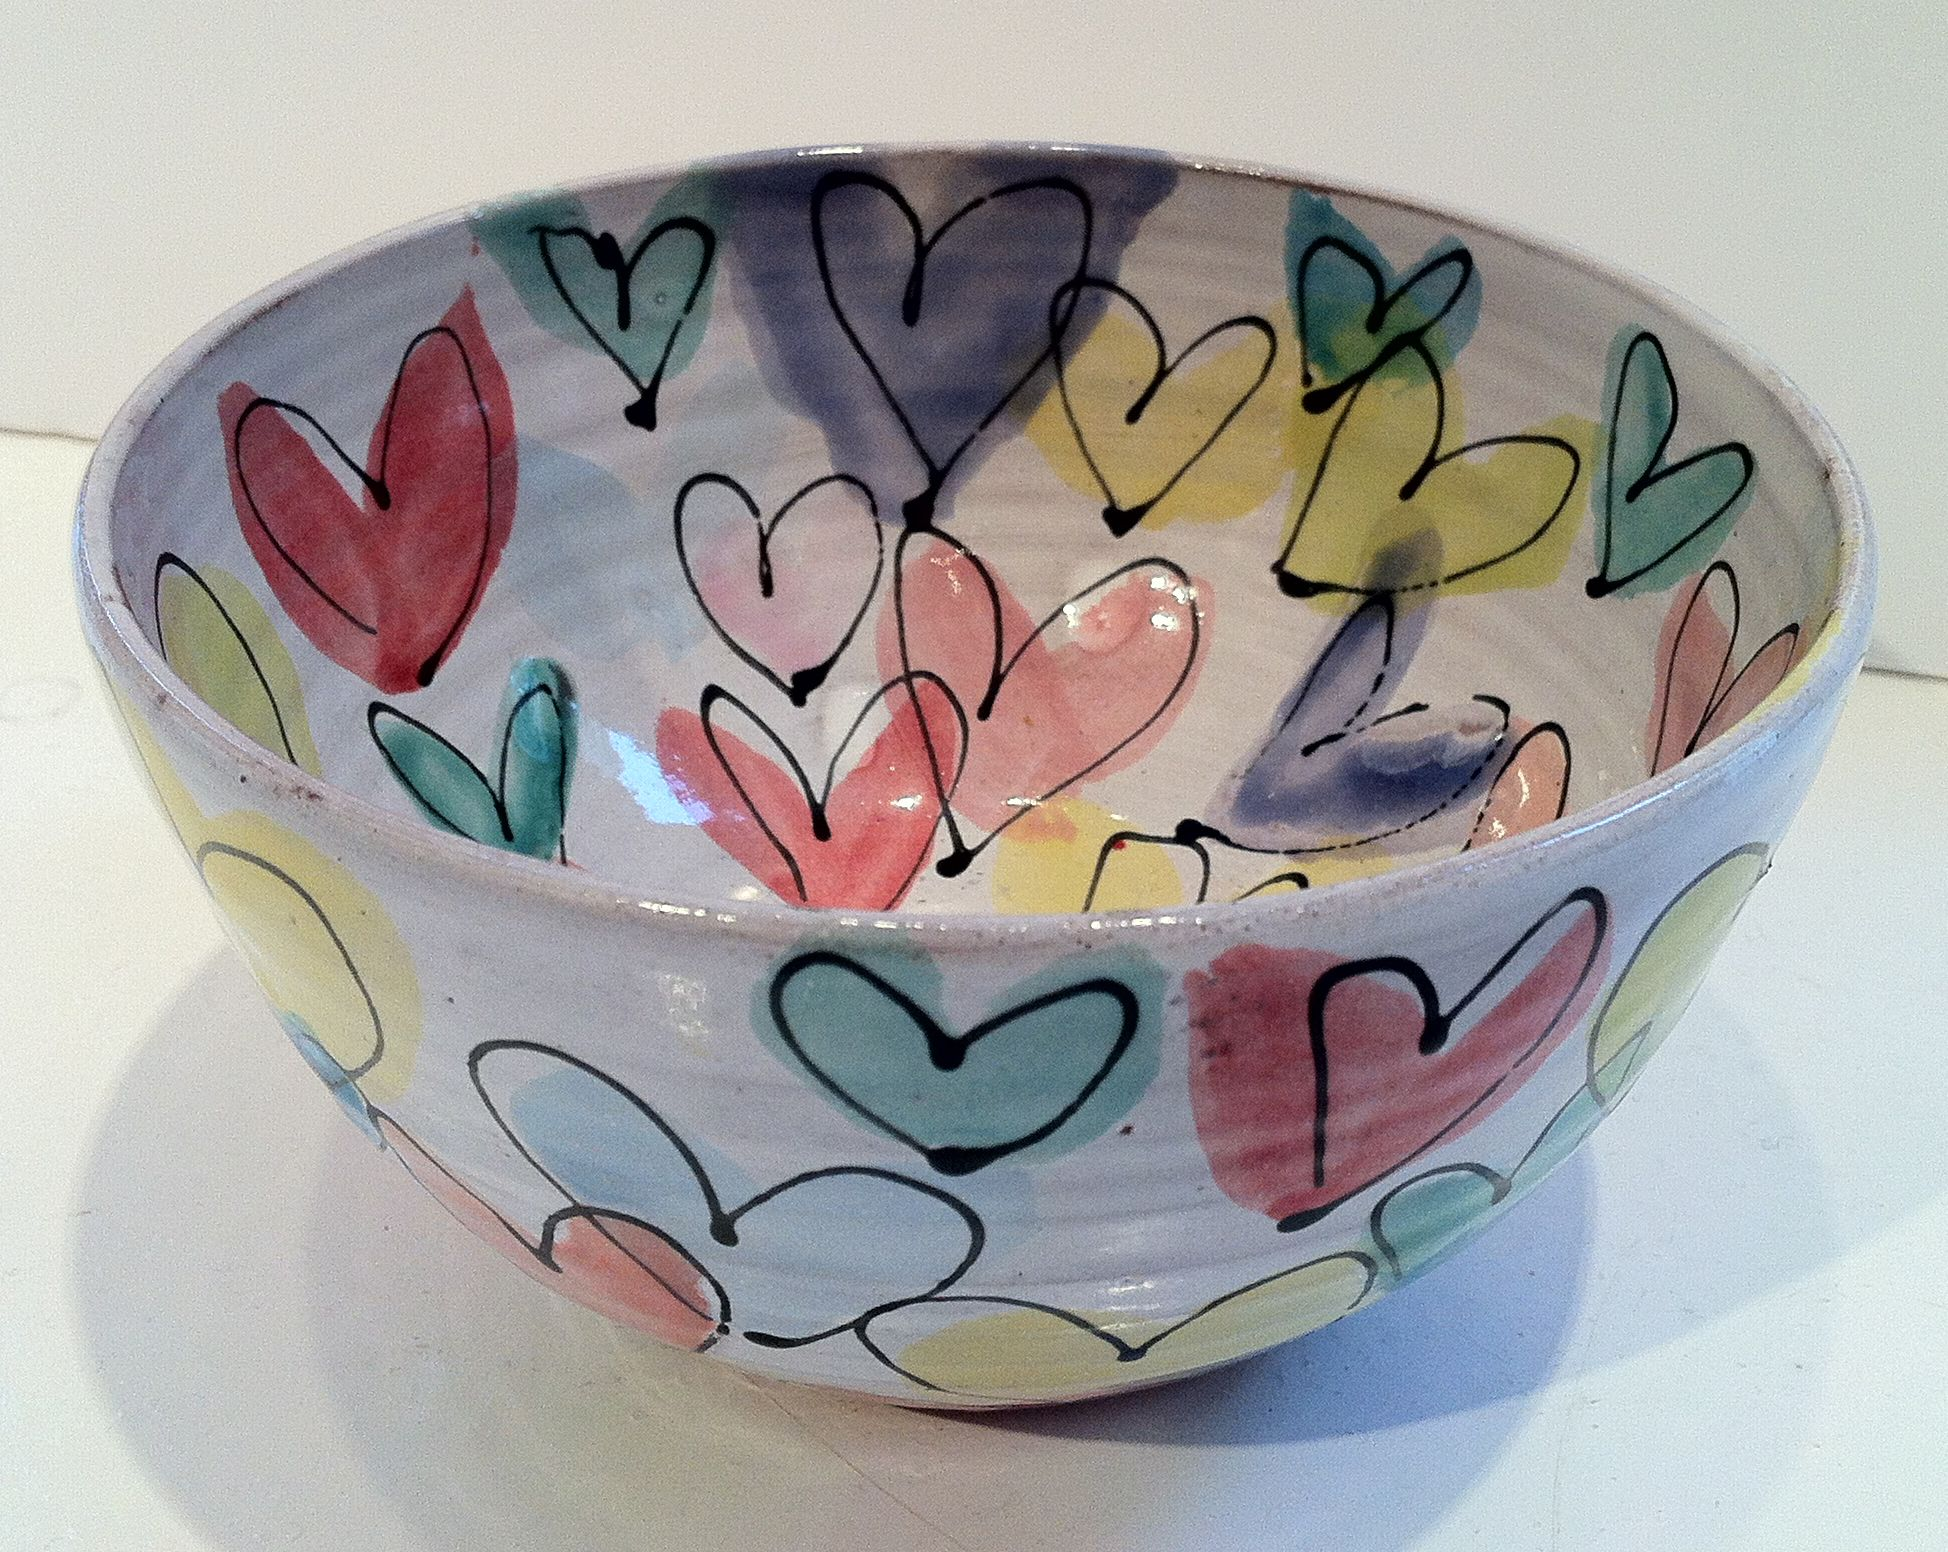 'Small Heart Bowl' Tina Davies